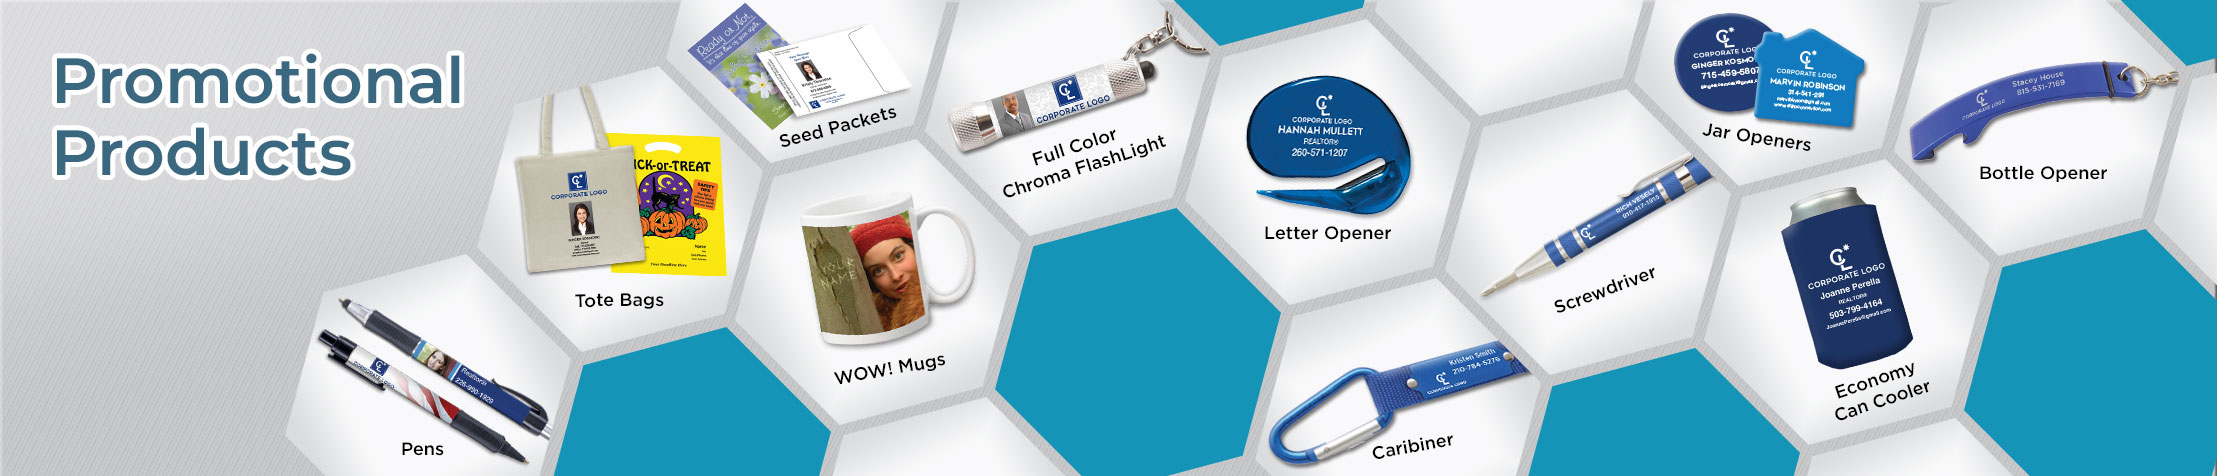 Coldwell Banker Real Estate Promotional Products - Coldwell Banker  personalized promotional pens, key chains, tote bags, flashlights, mugs | BestPrintBuy.com